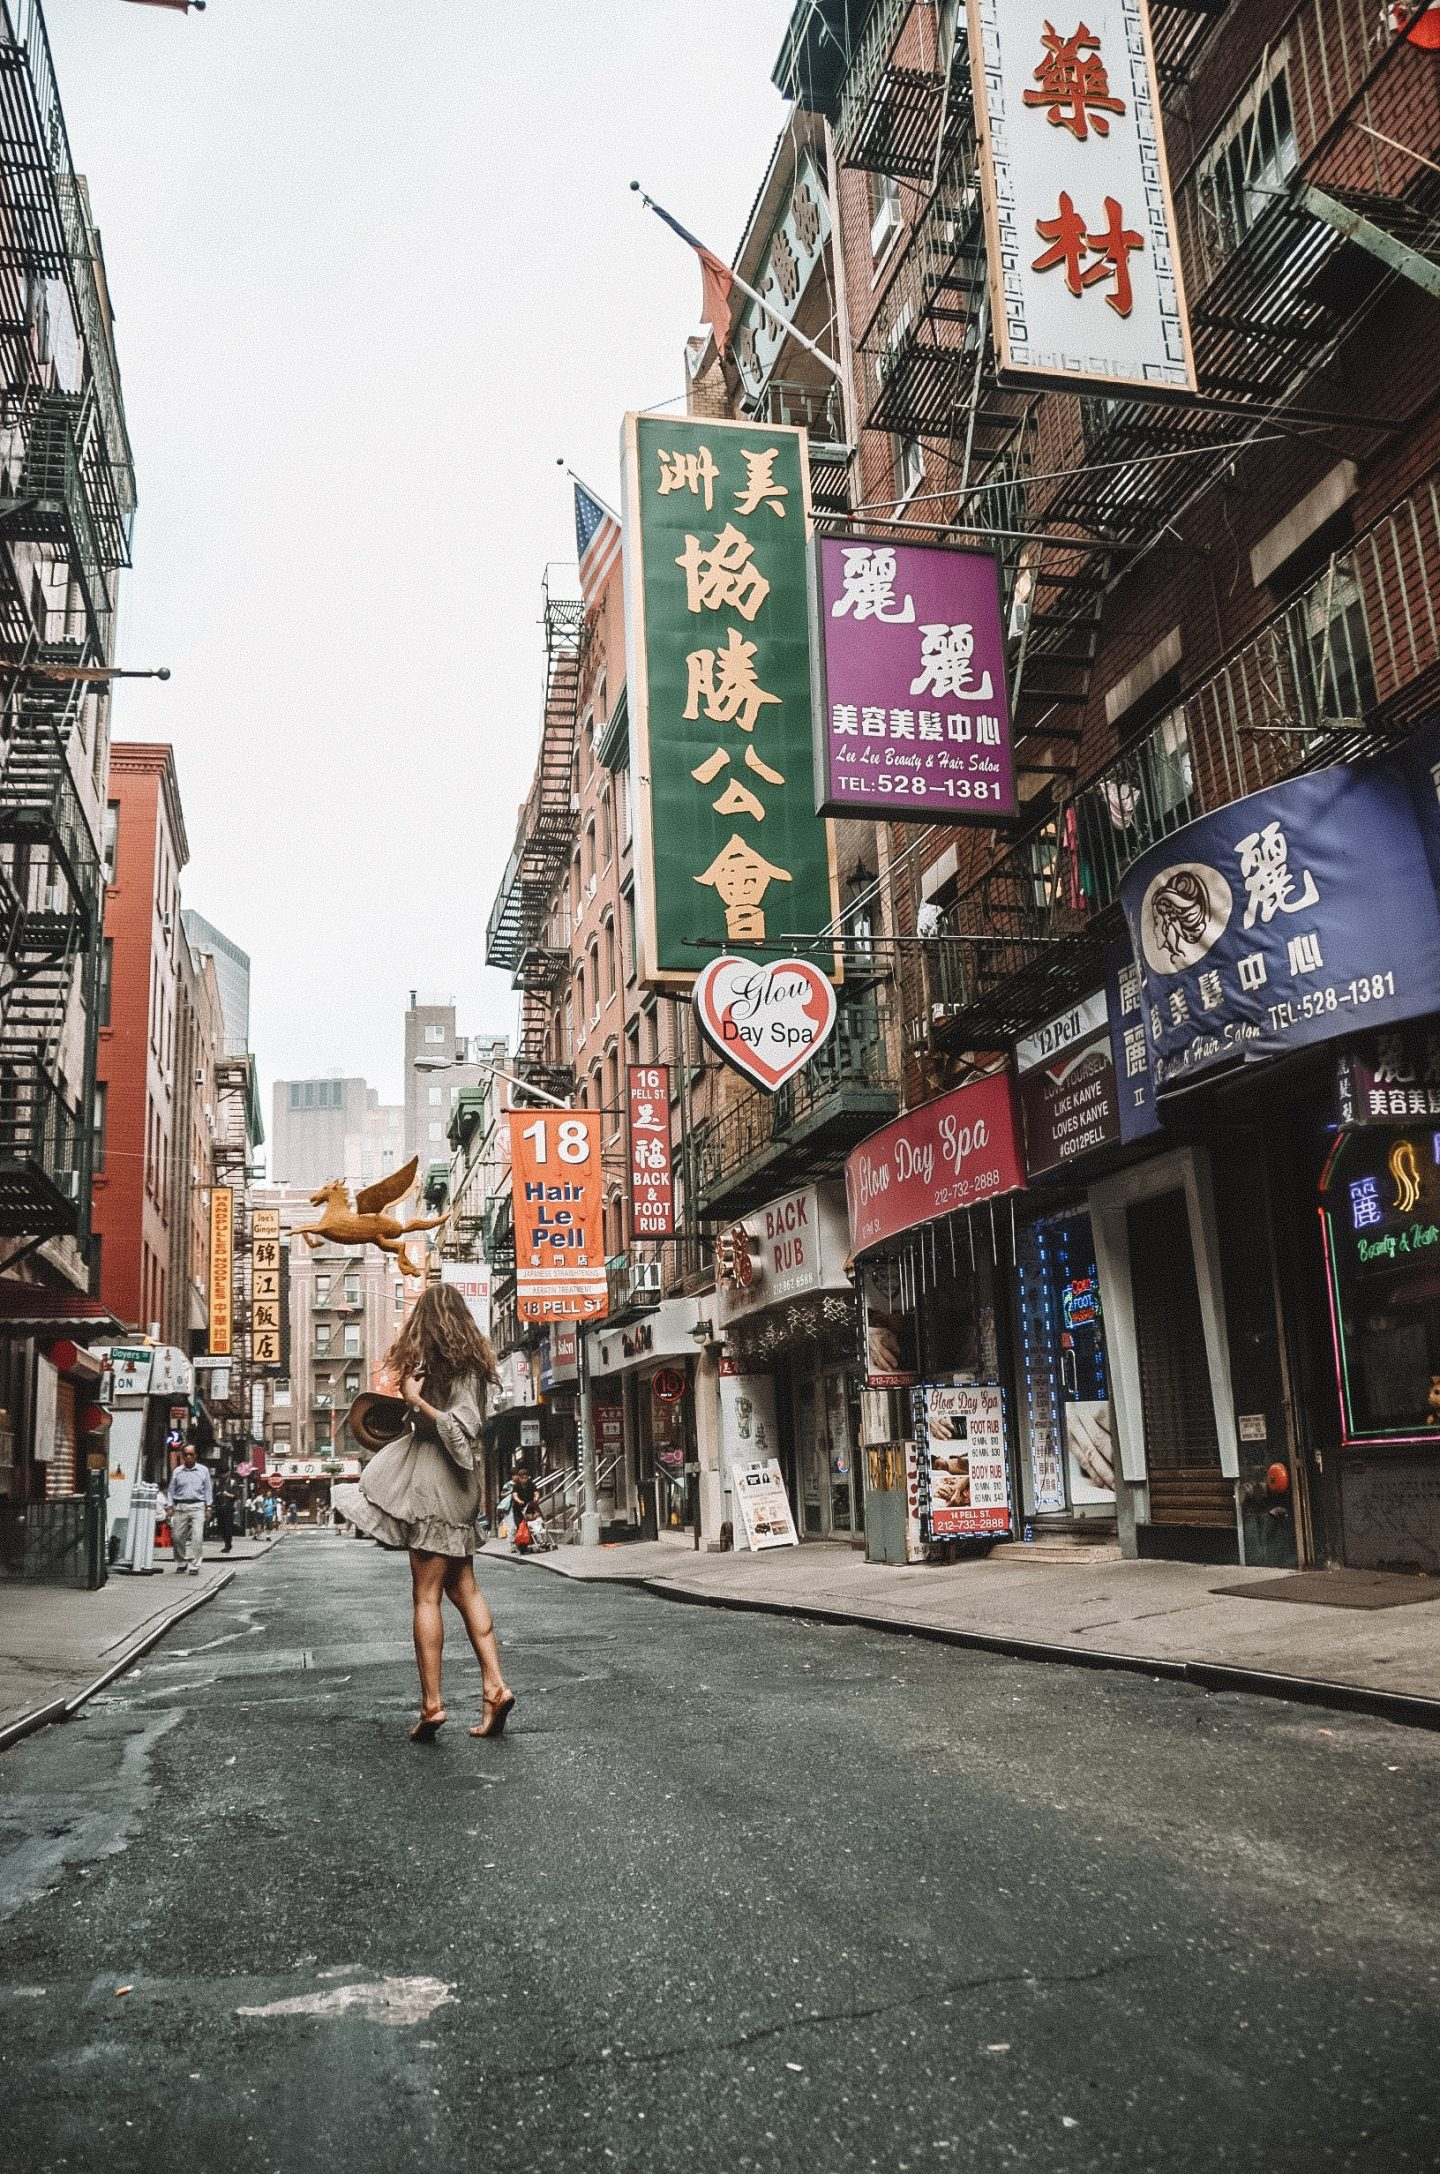 Girl twirling in green dress in Chinatown, NYC